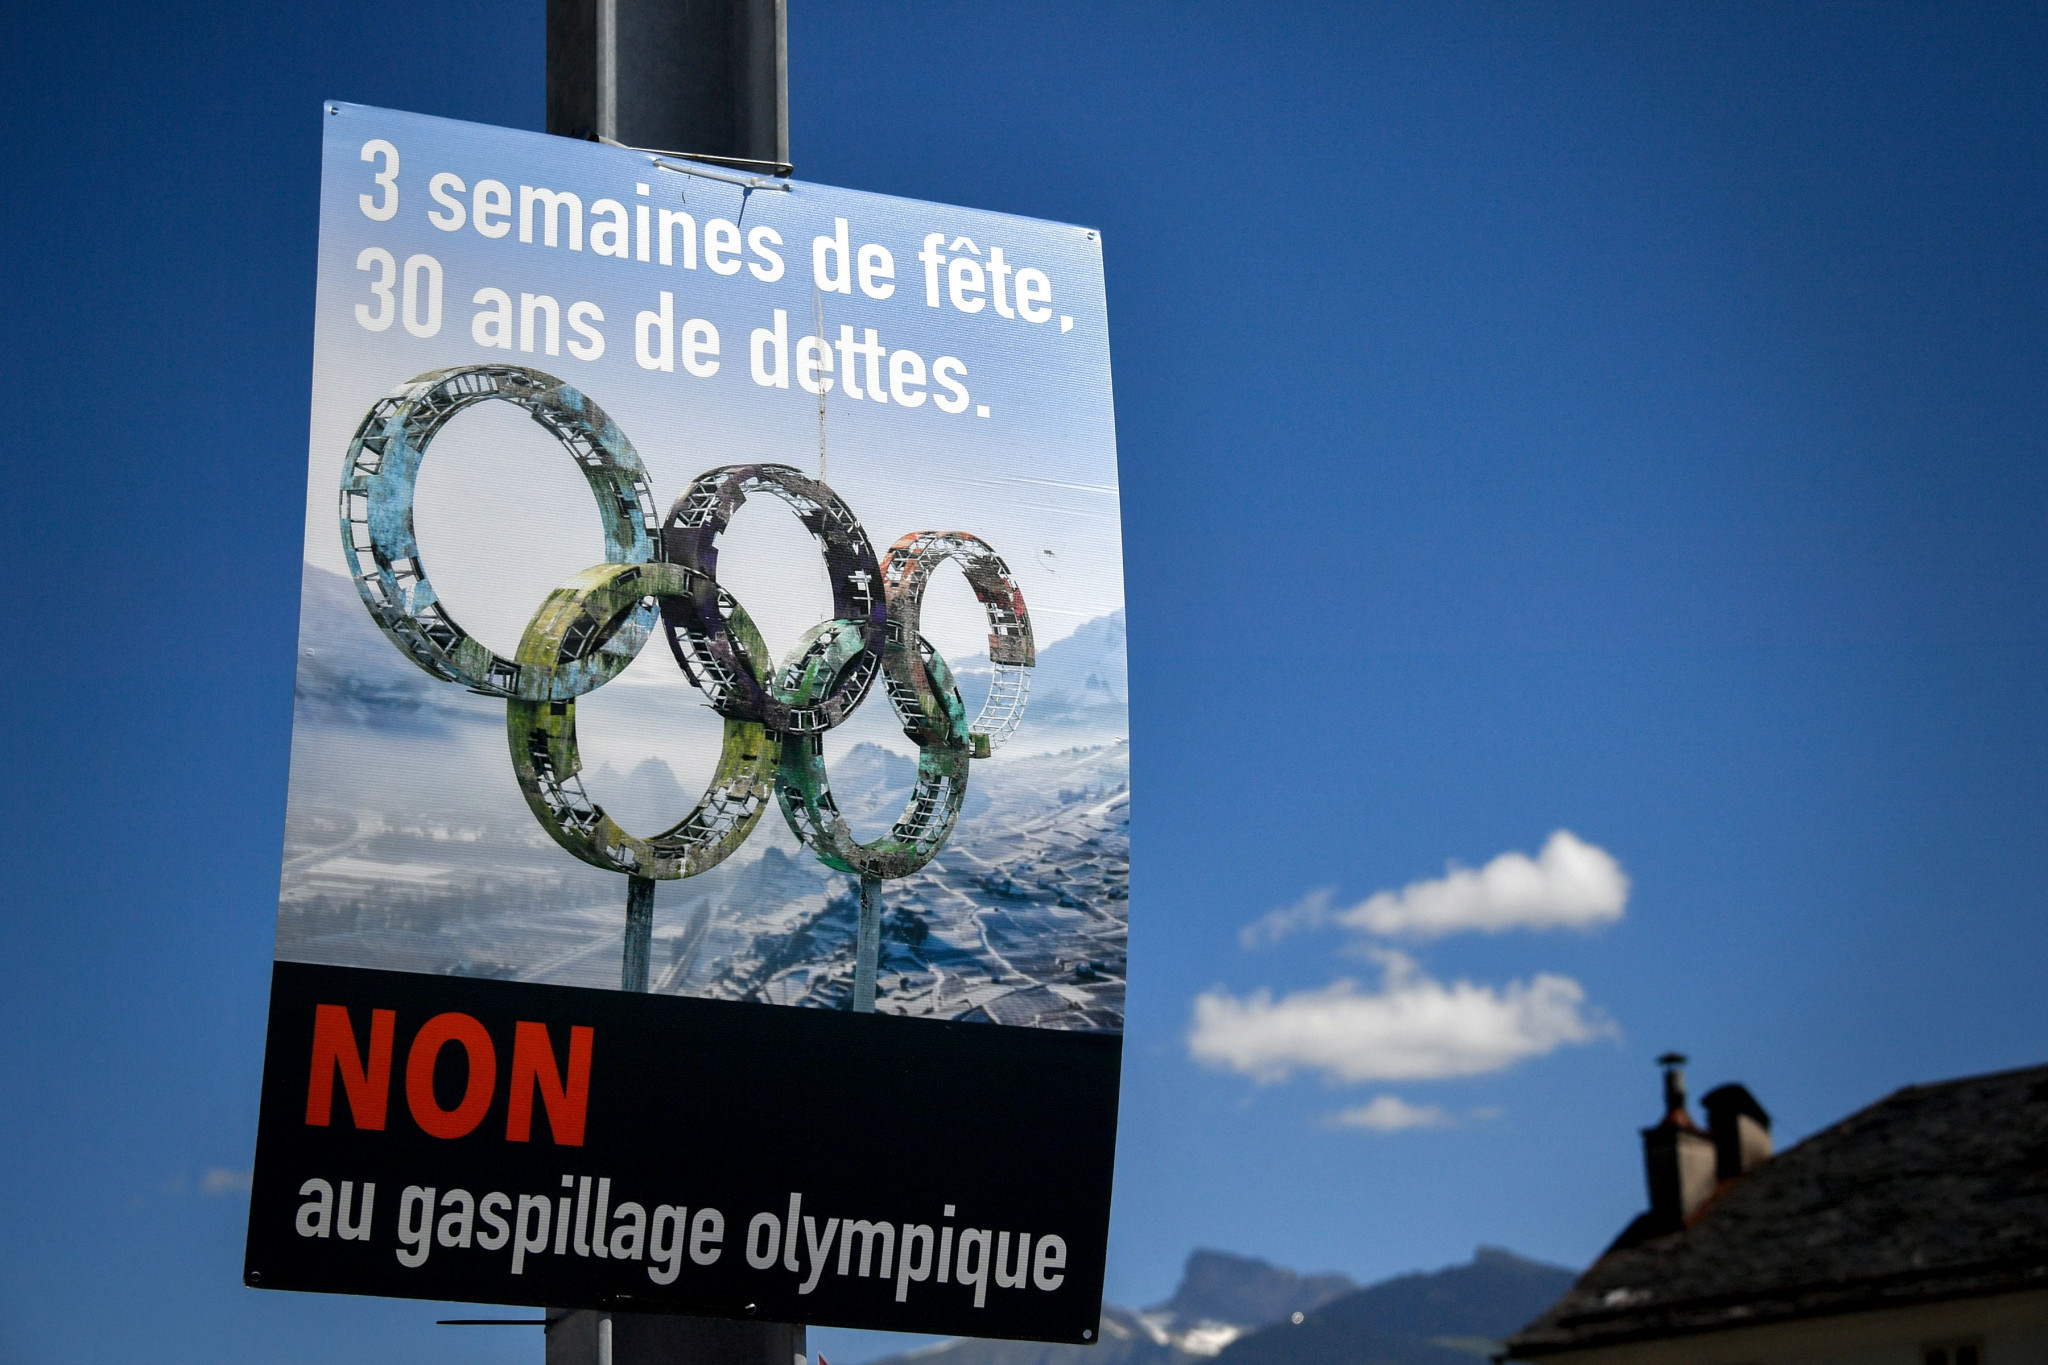 IOC urge cities to see positives of hosting Winter Olympics and Paralympics after Sion 2026 withdrawal